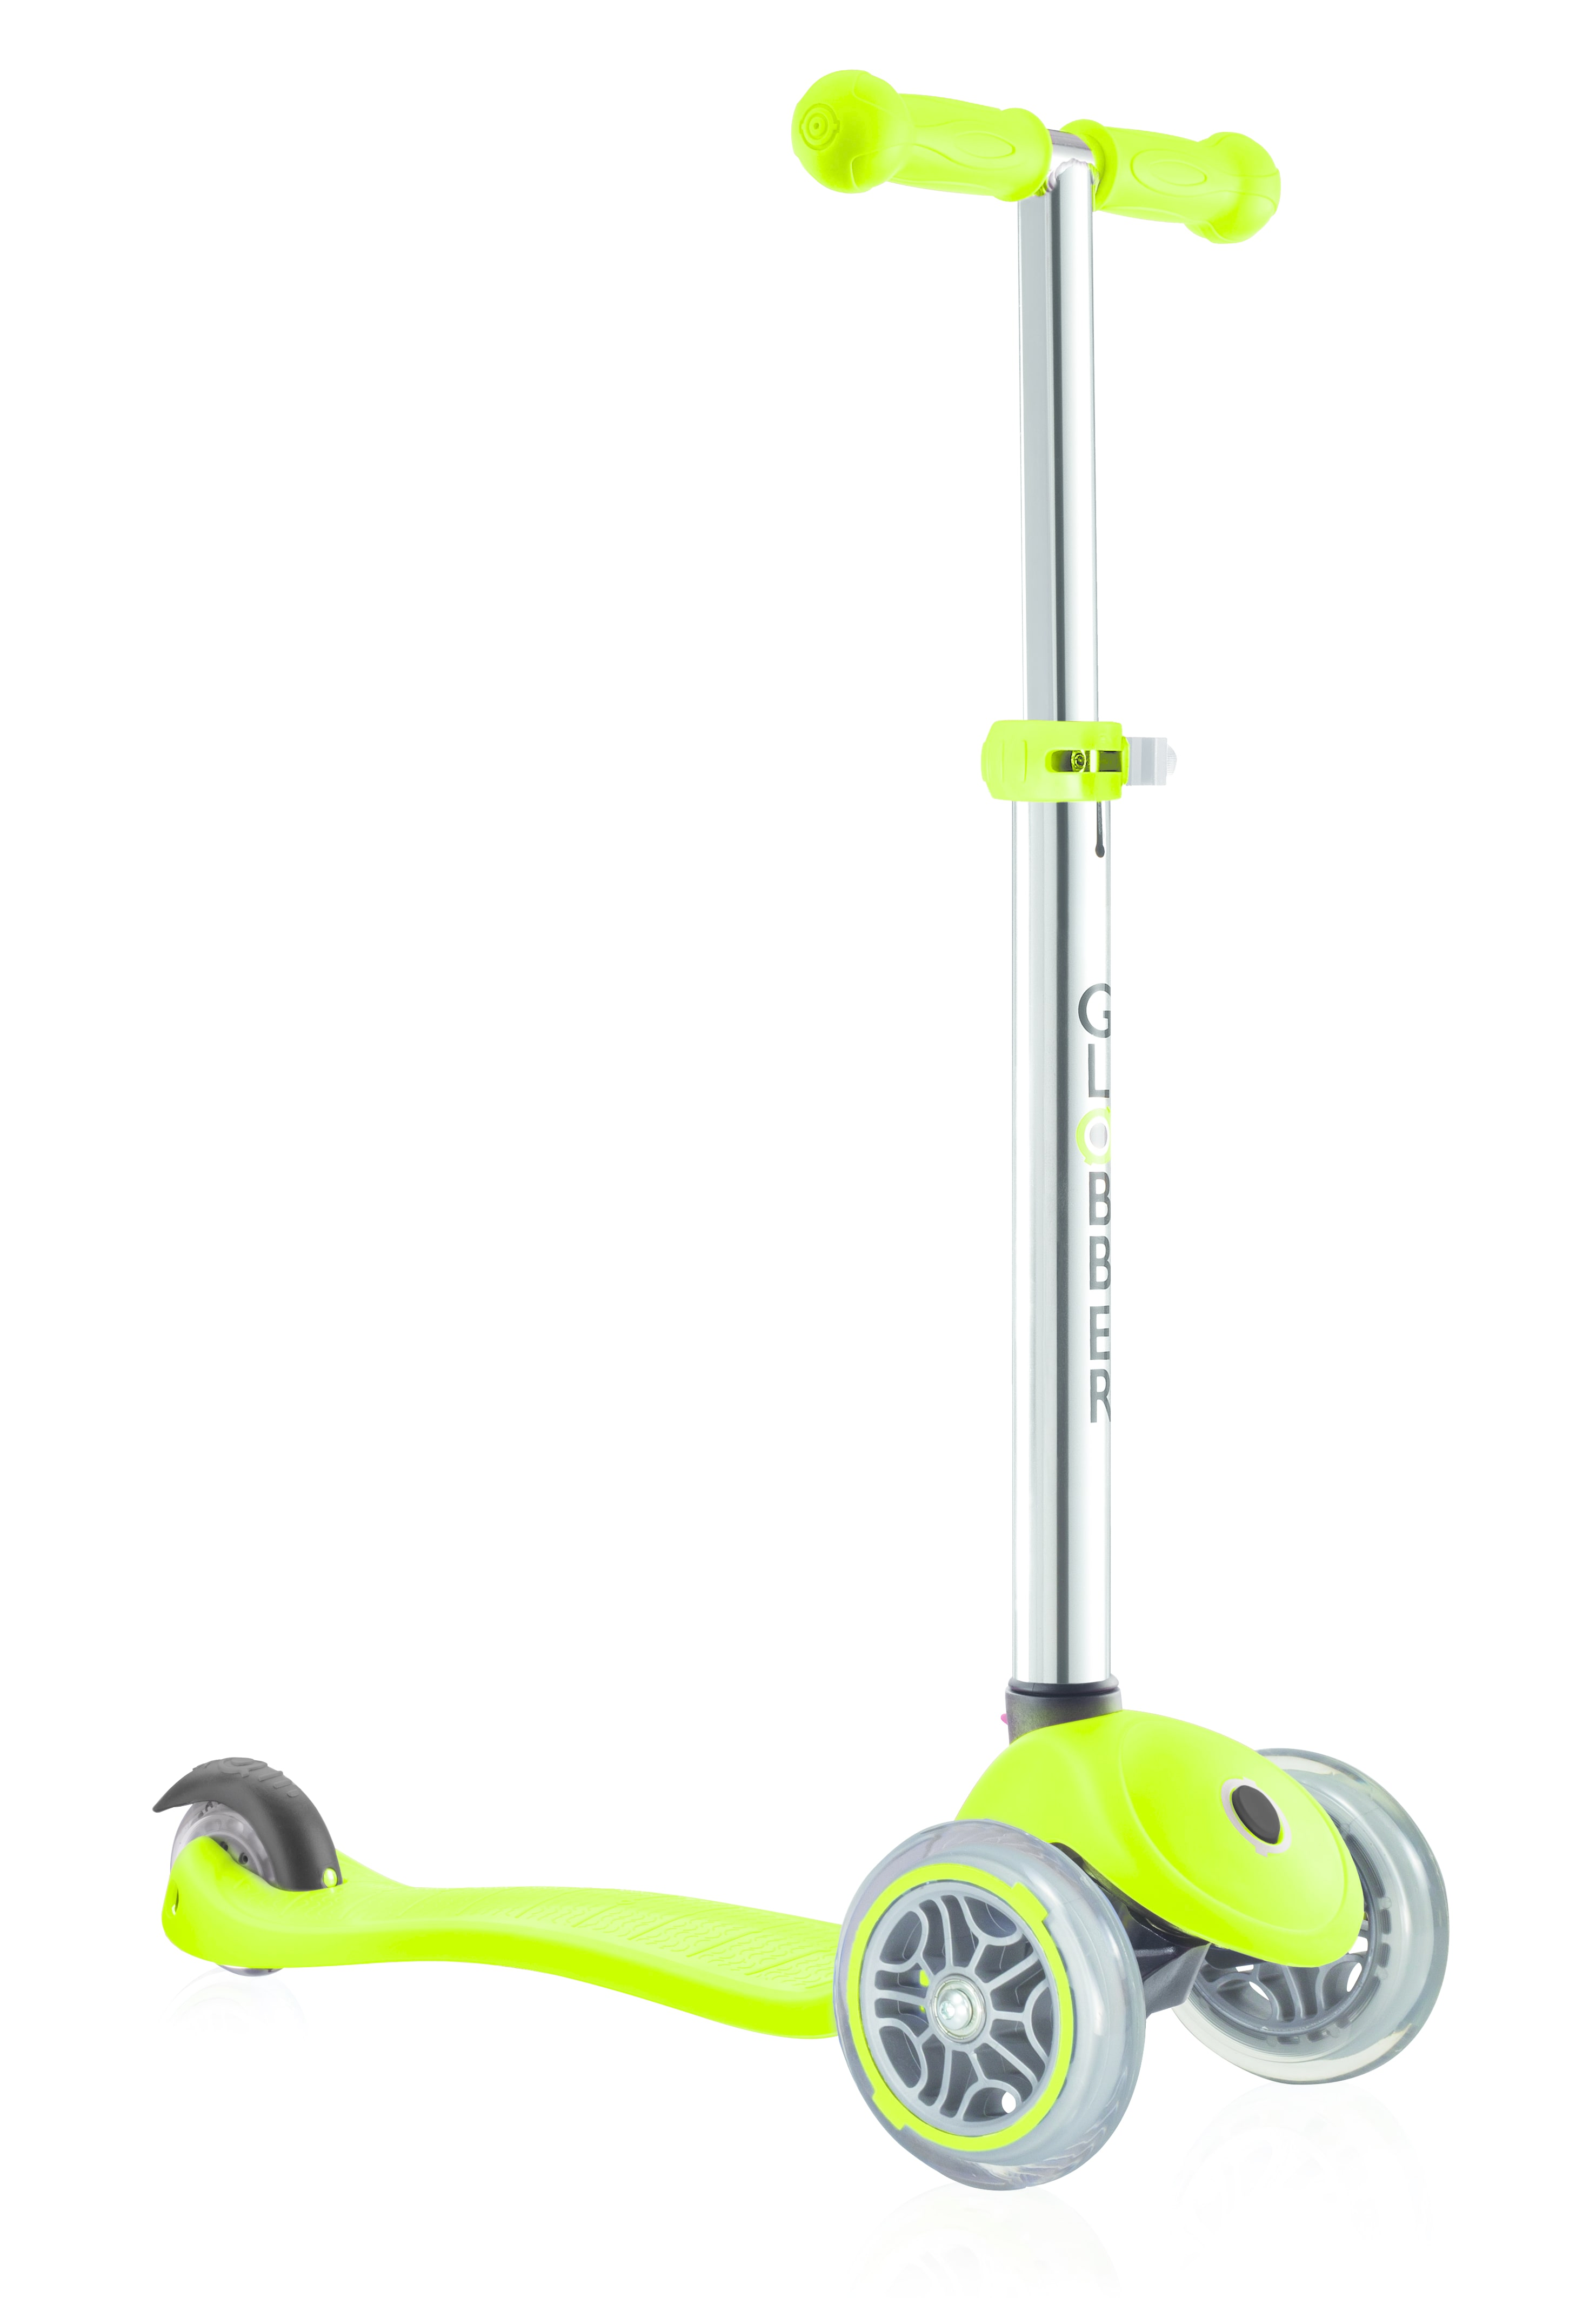 Globber My Free scooter: description, features and reviews